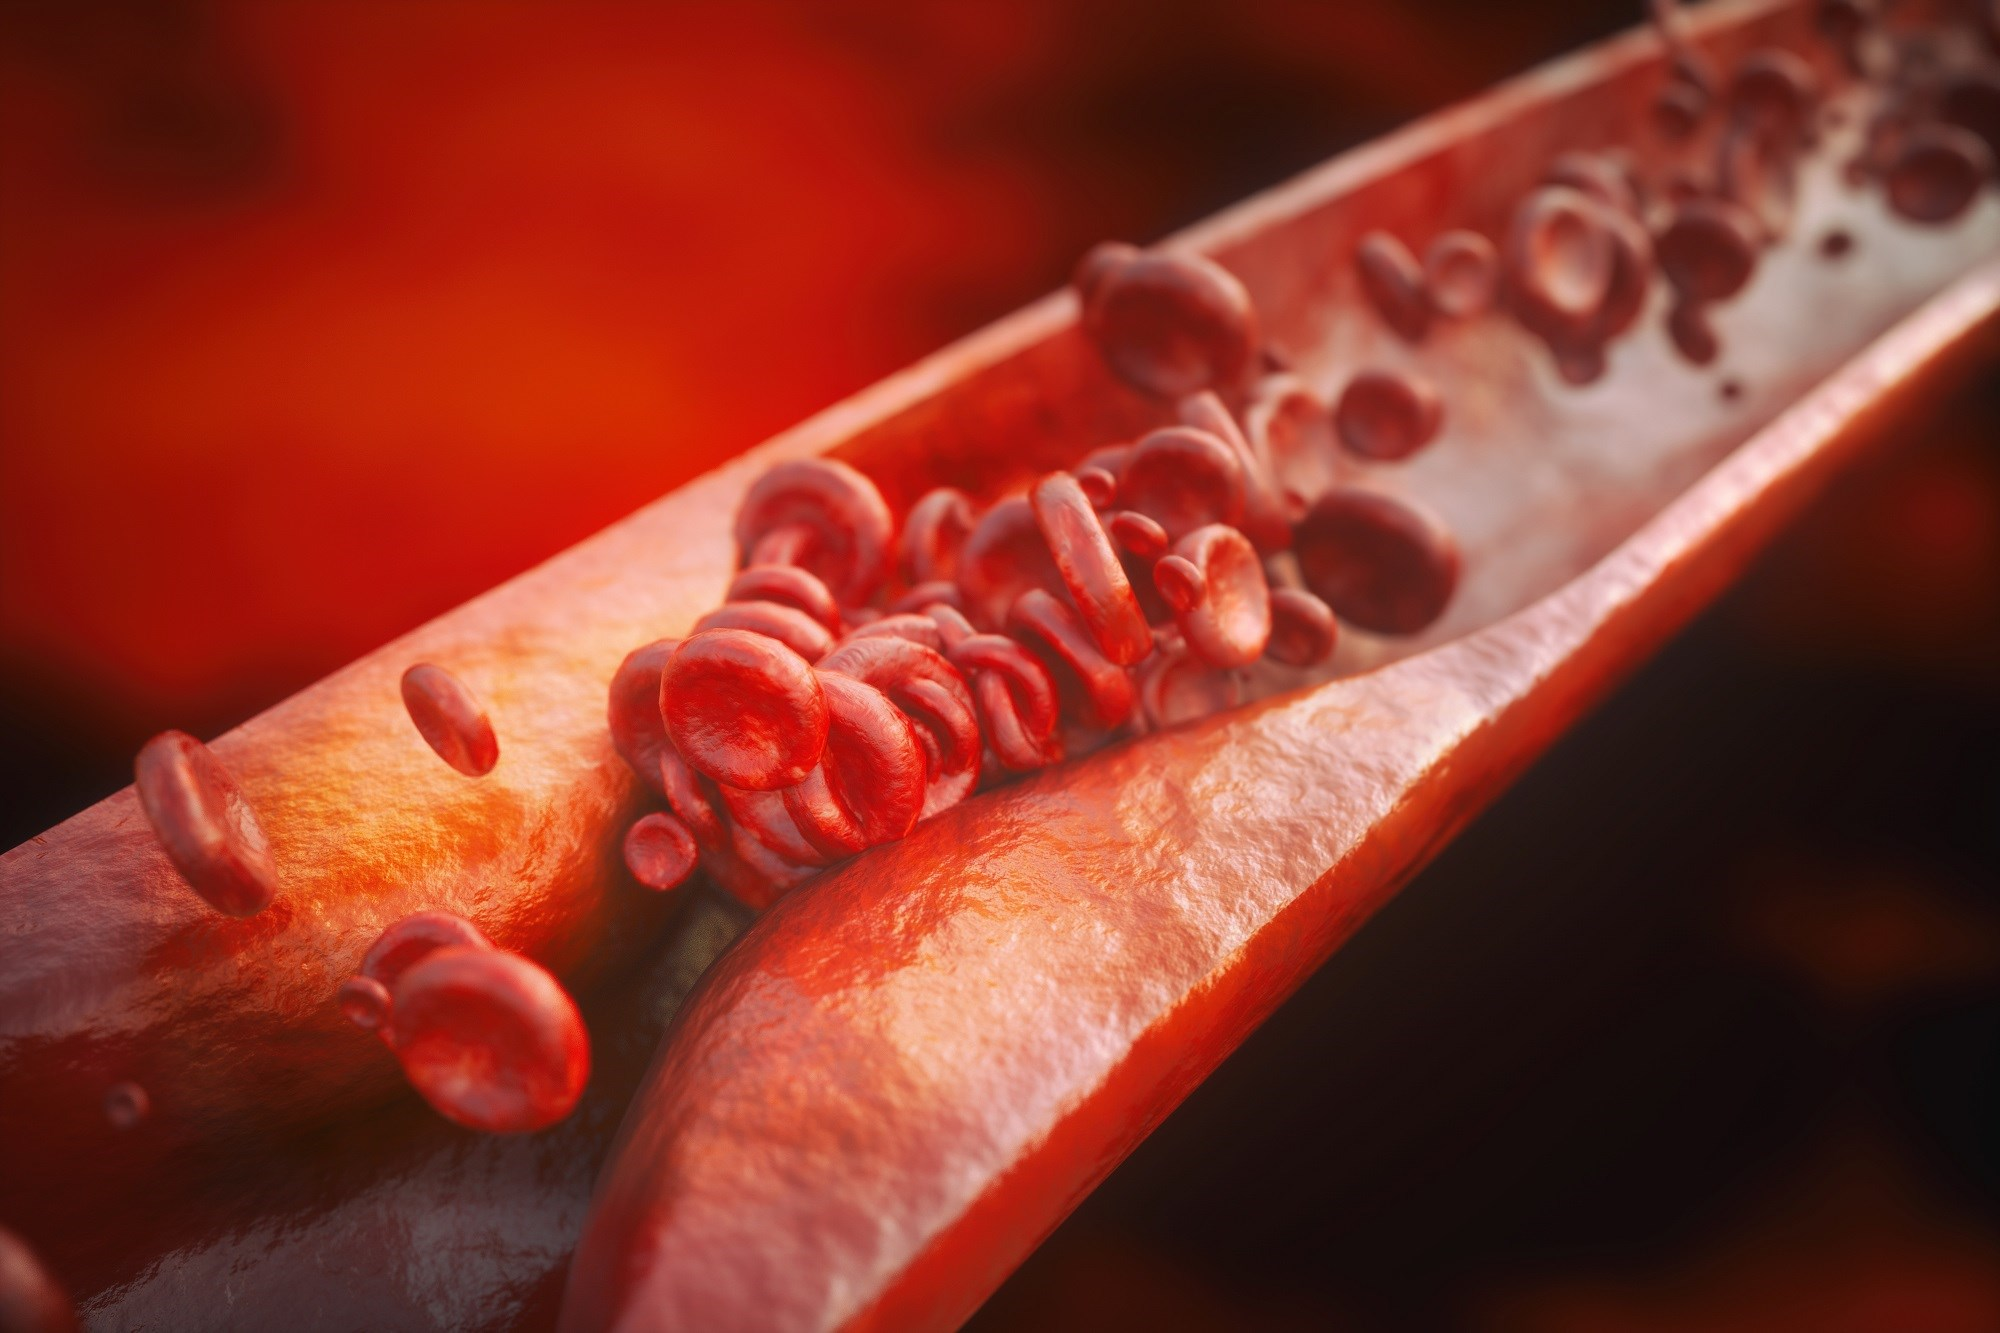 Atherosclerosis Progression Differs According to Timing of Estradiol Therapy After Menopause